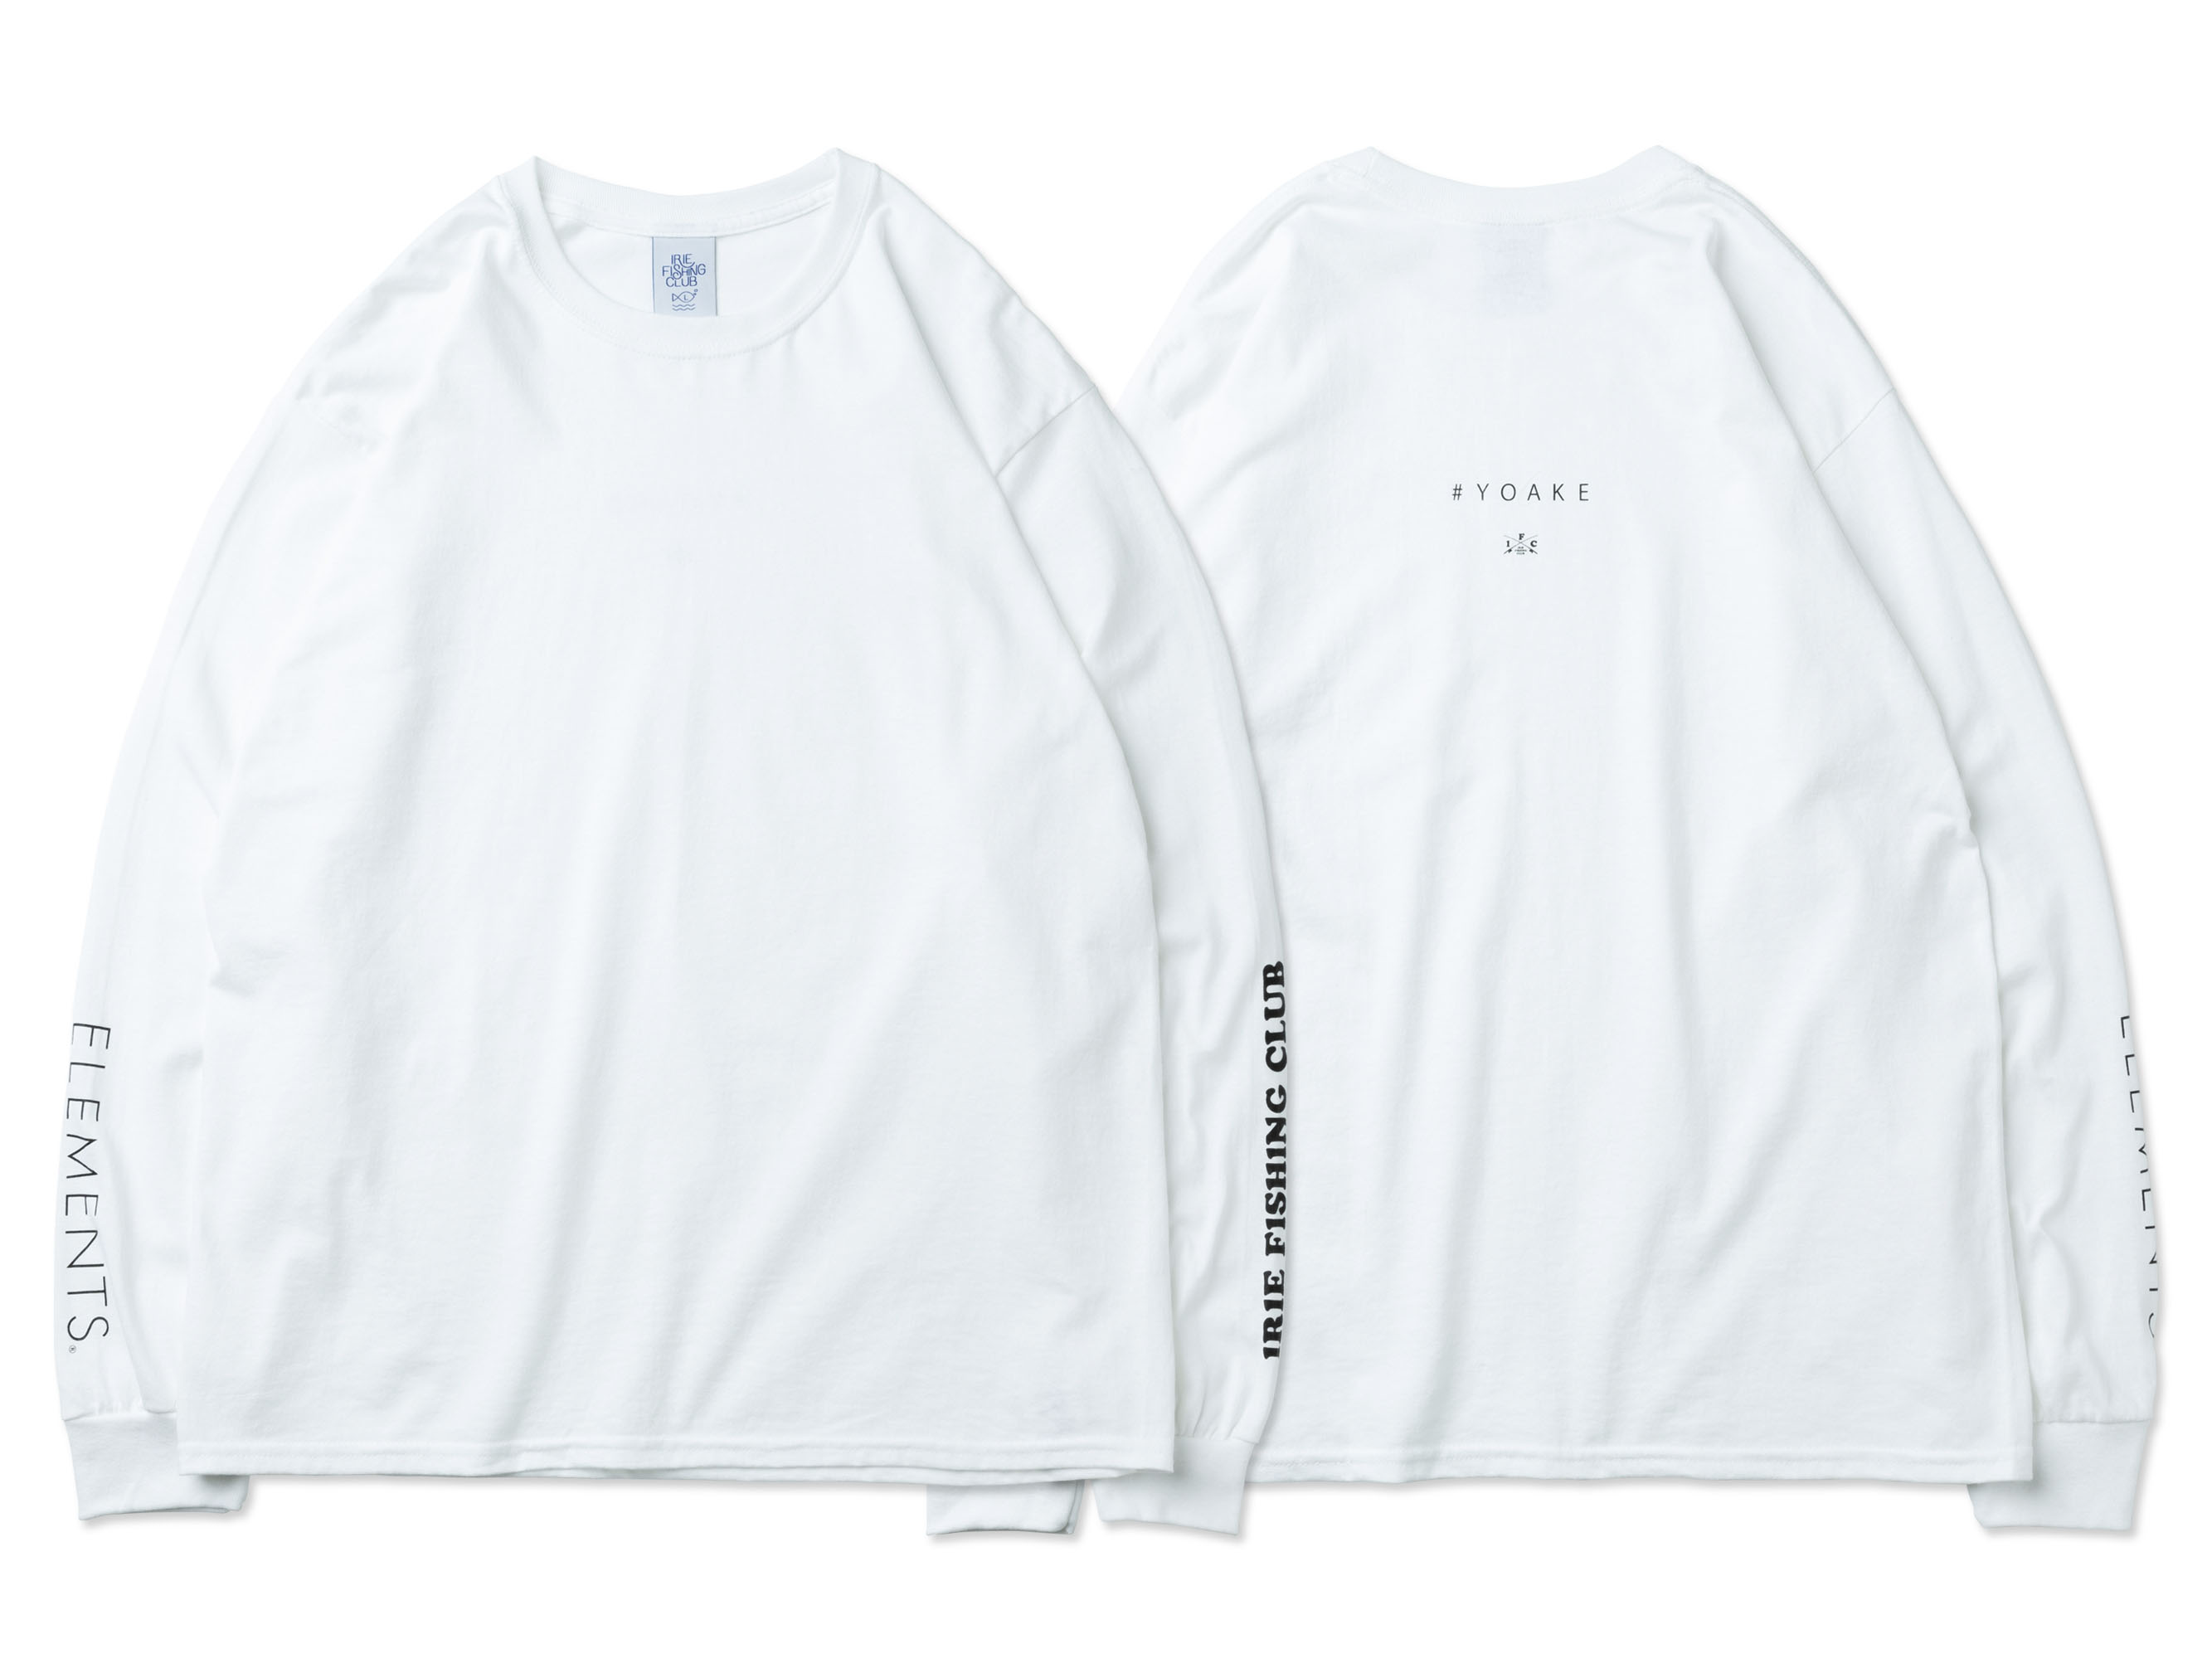 ×ELEMENTS LOGO L/S TEE - IRIE FISHING CLUB